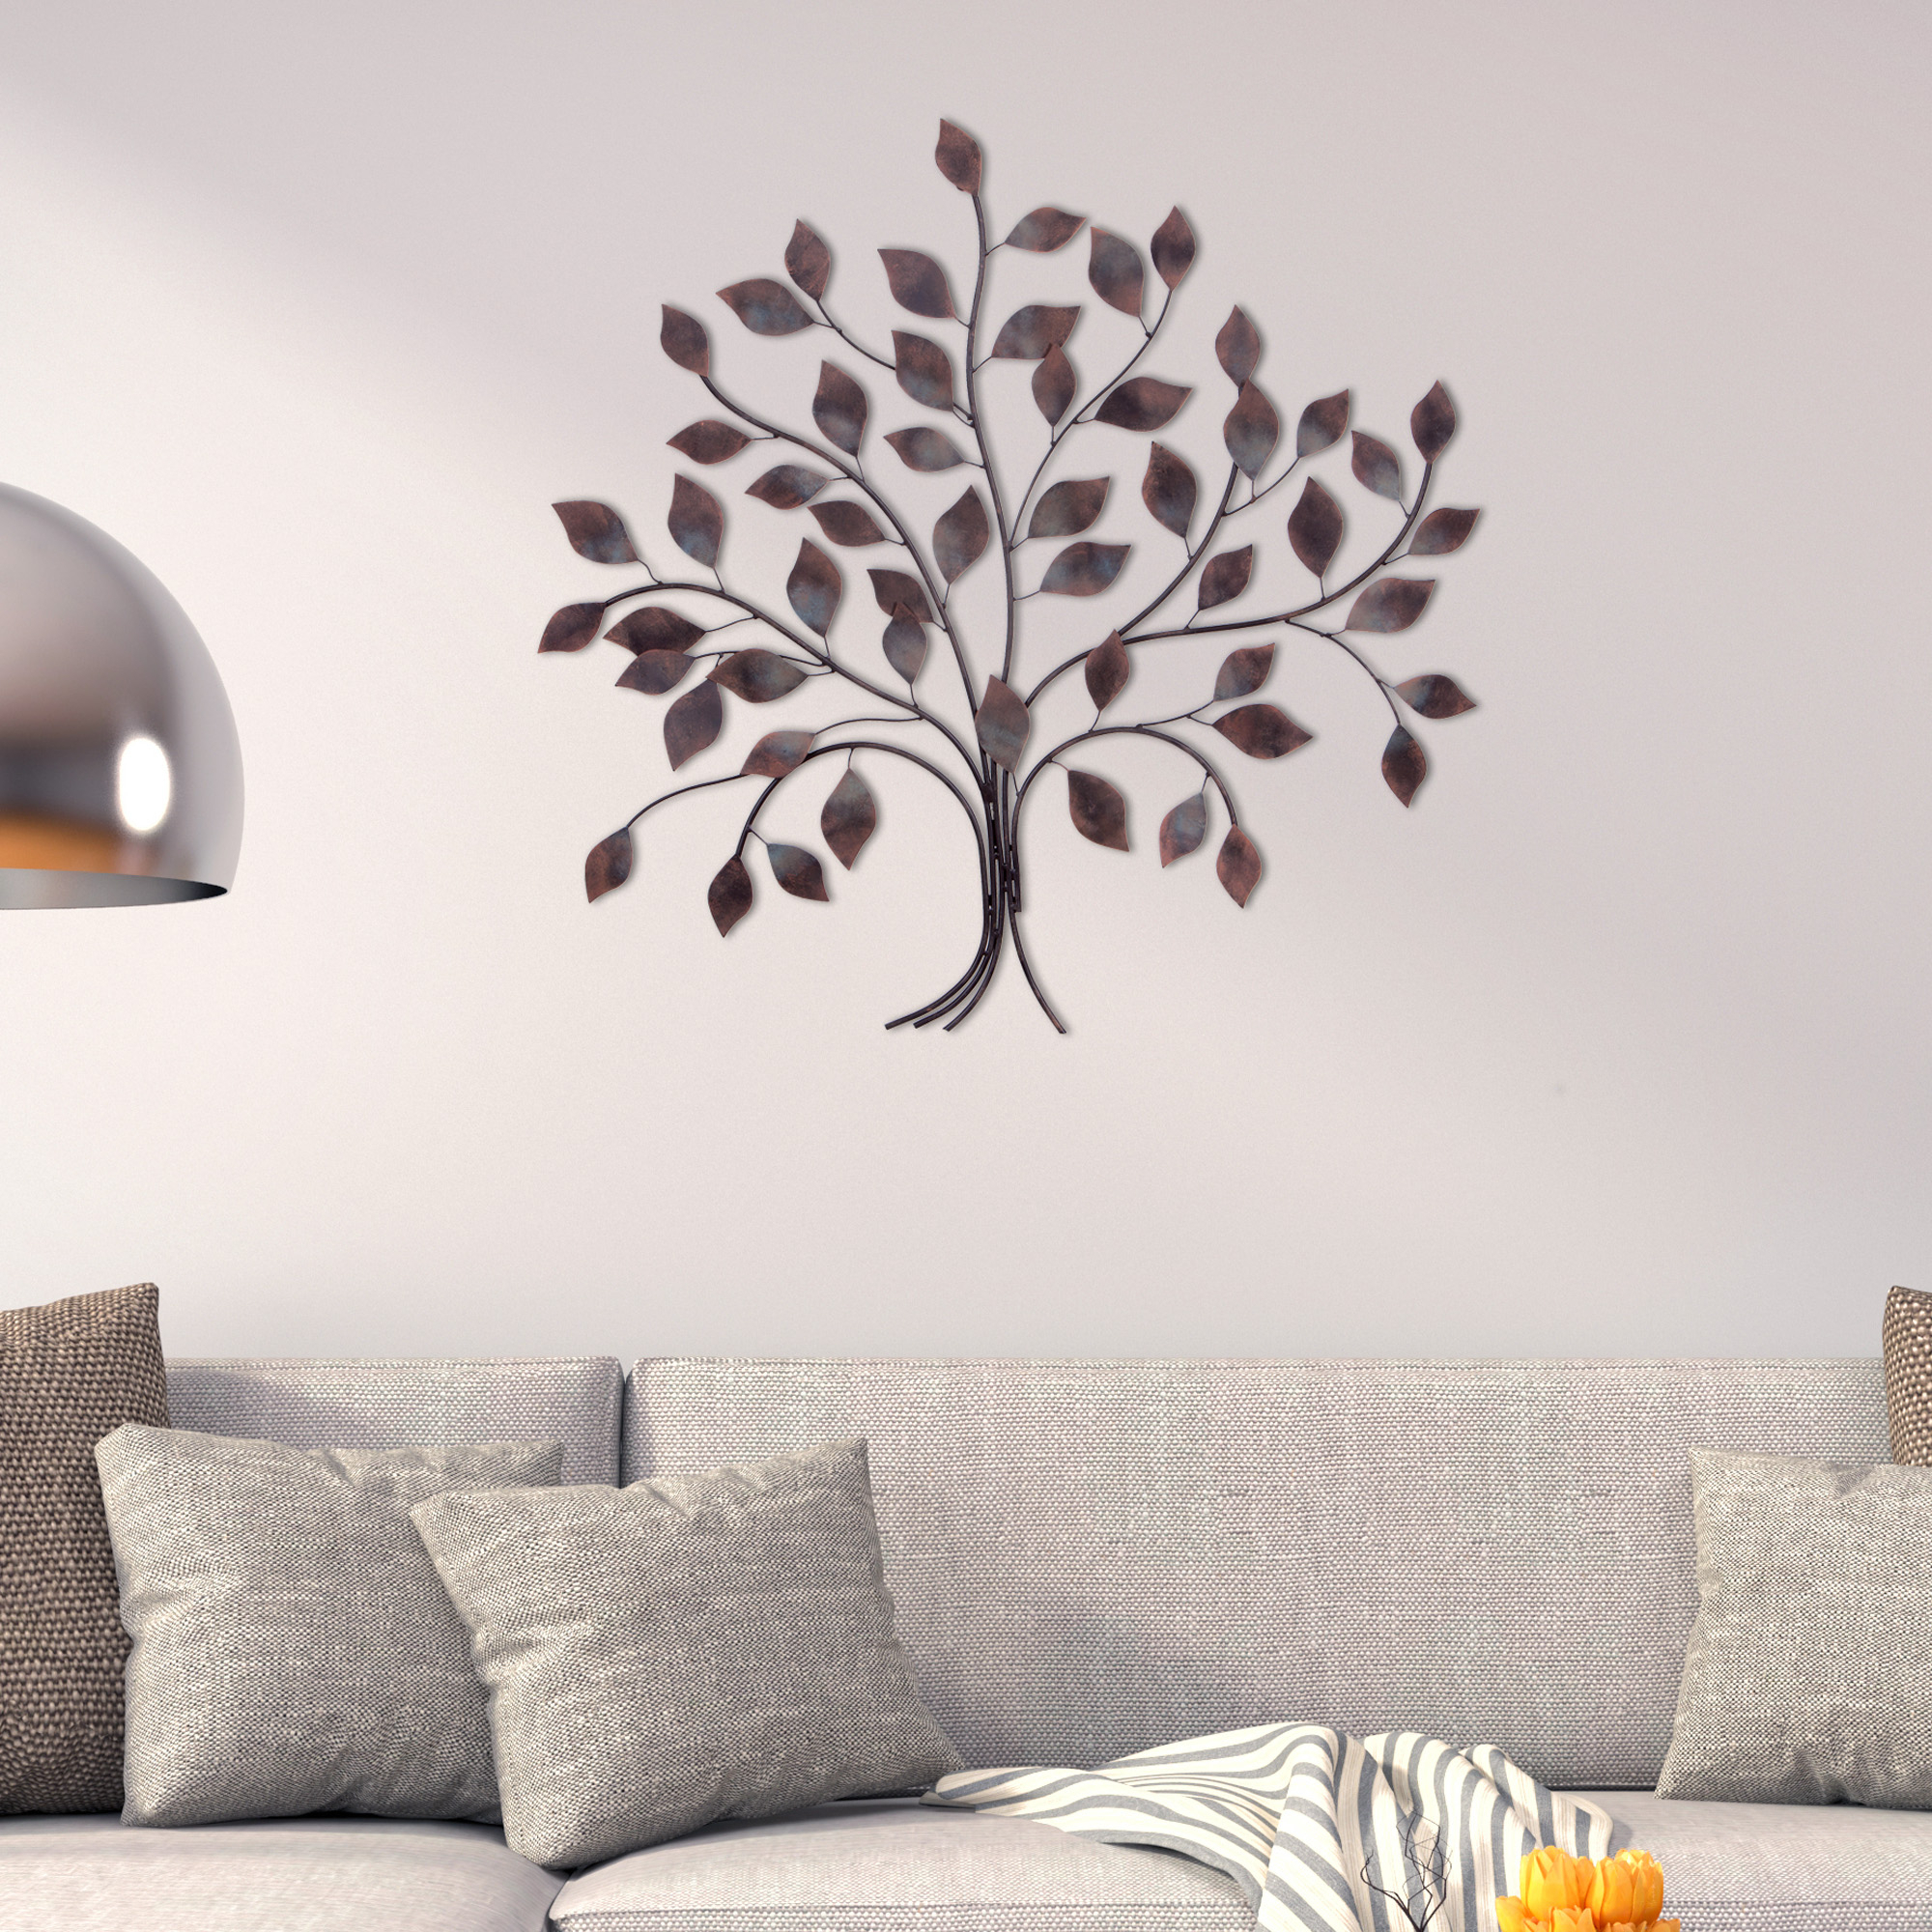 Patton Wall Decor Bronze Tree Branch Decorative Metal Wall Décor With Regard To Tree Wall Decor (View 5 of 30)